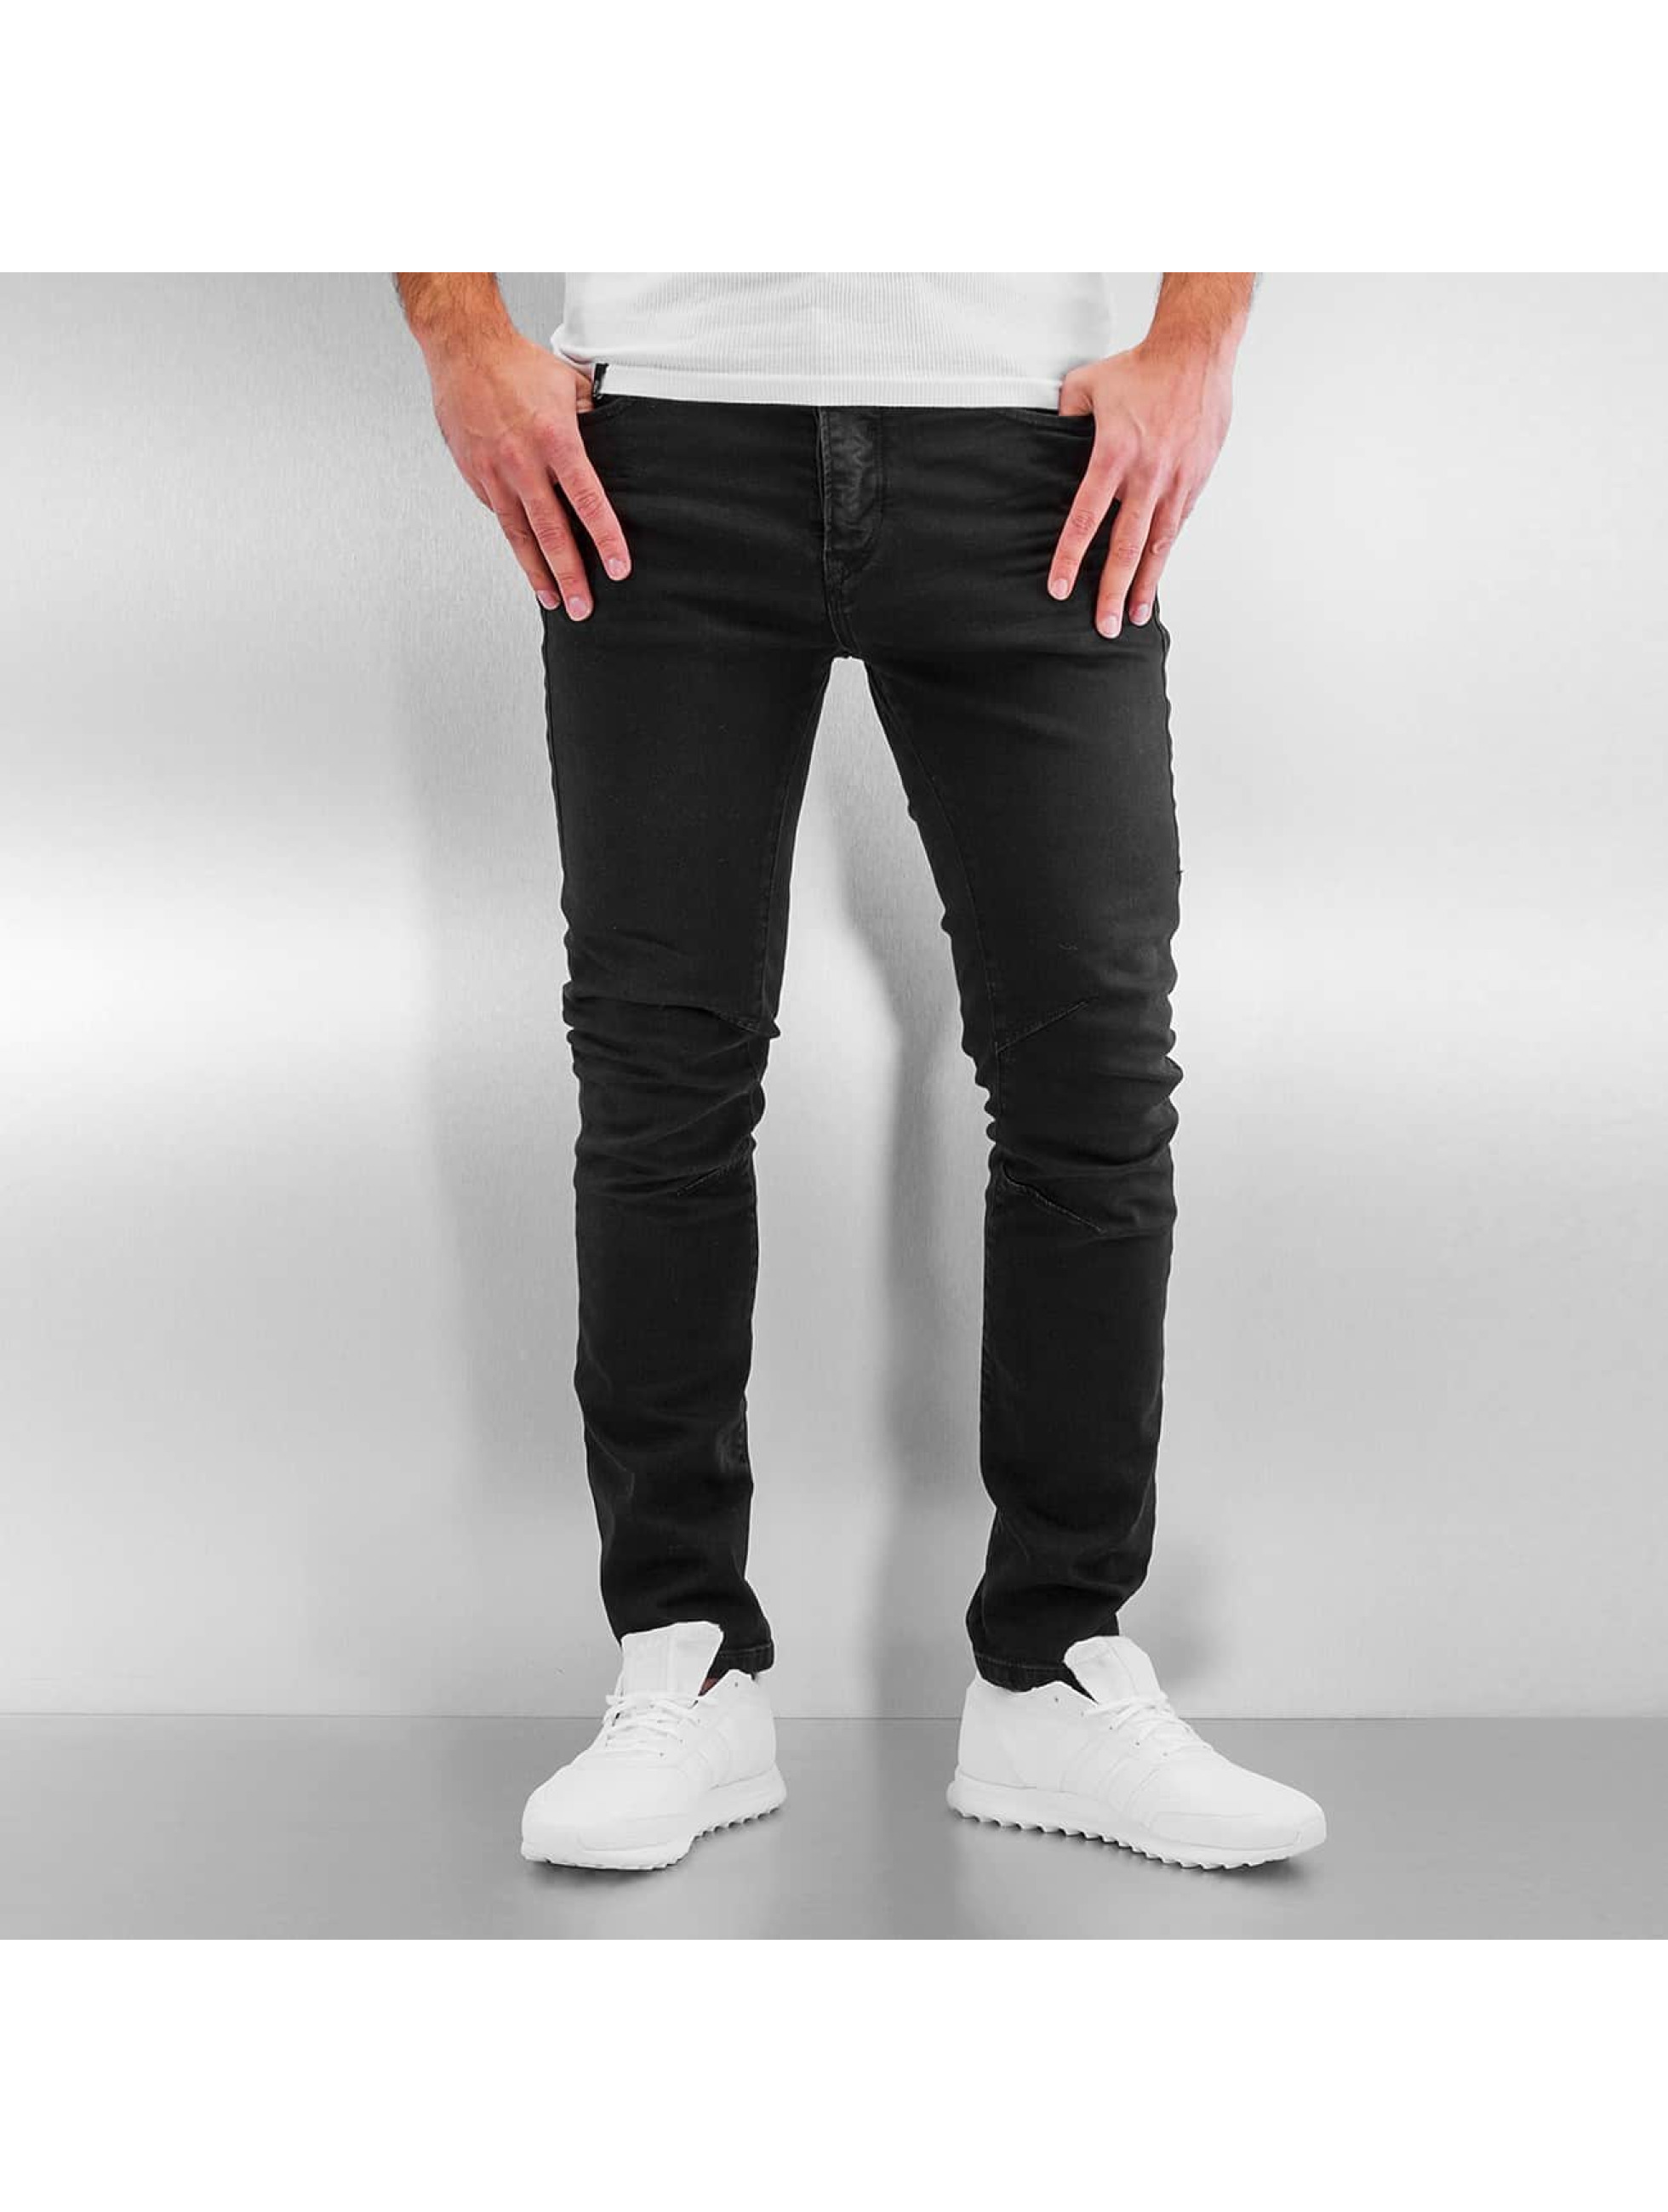 Jack & Jones Slim Fit Jeans jjIluke jjEcho JOS 999 black